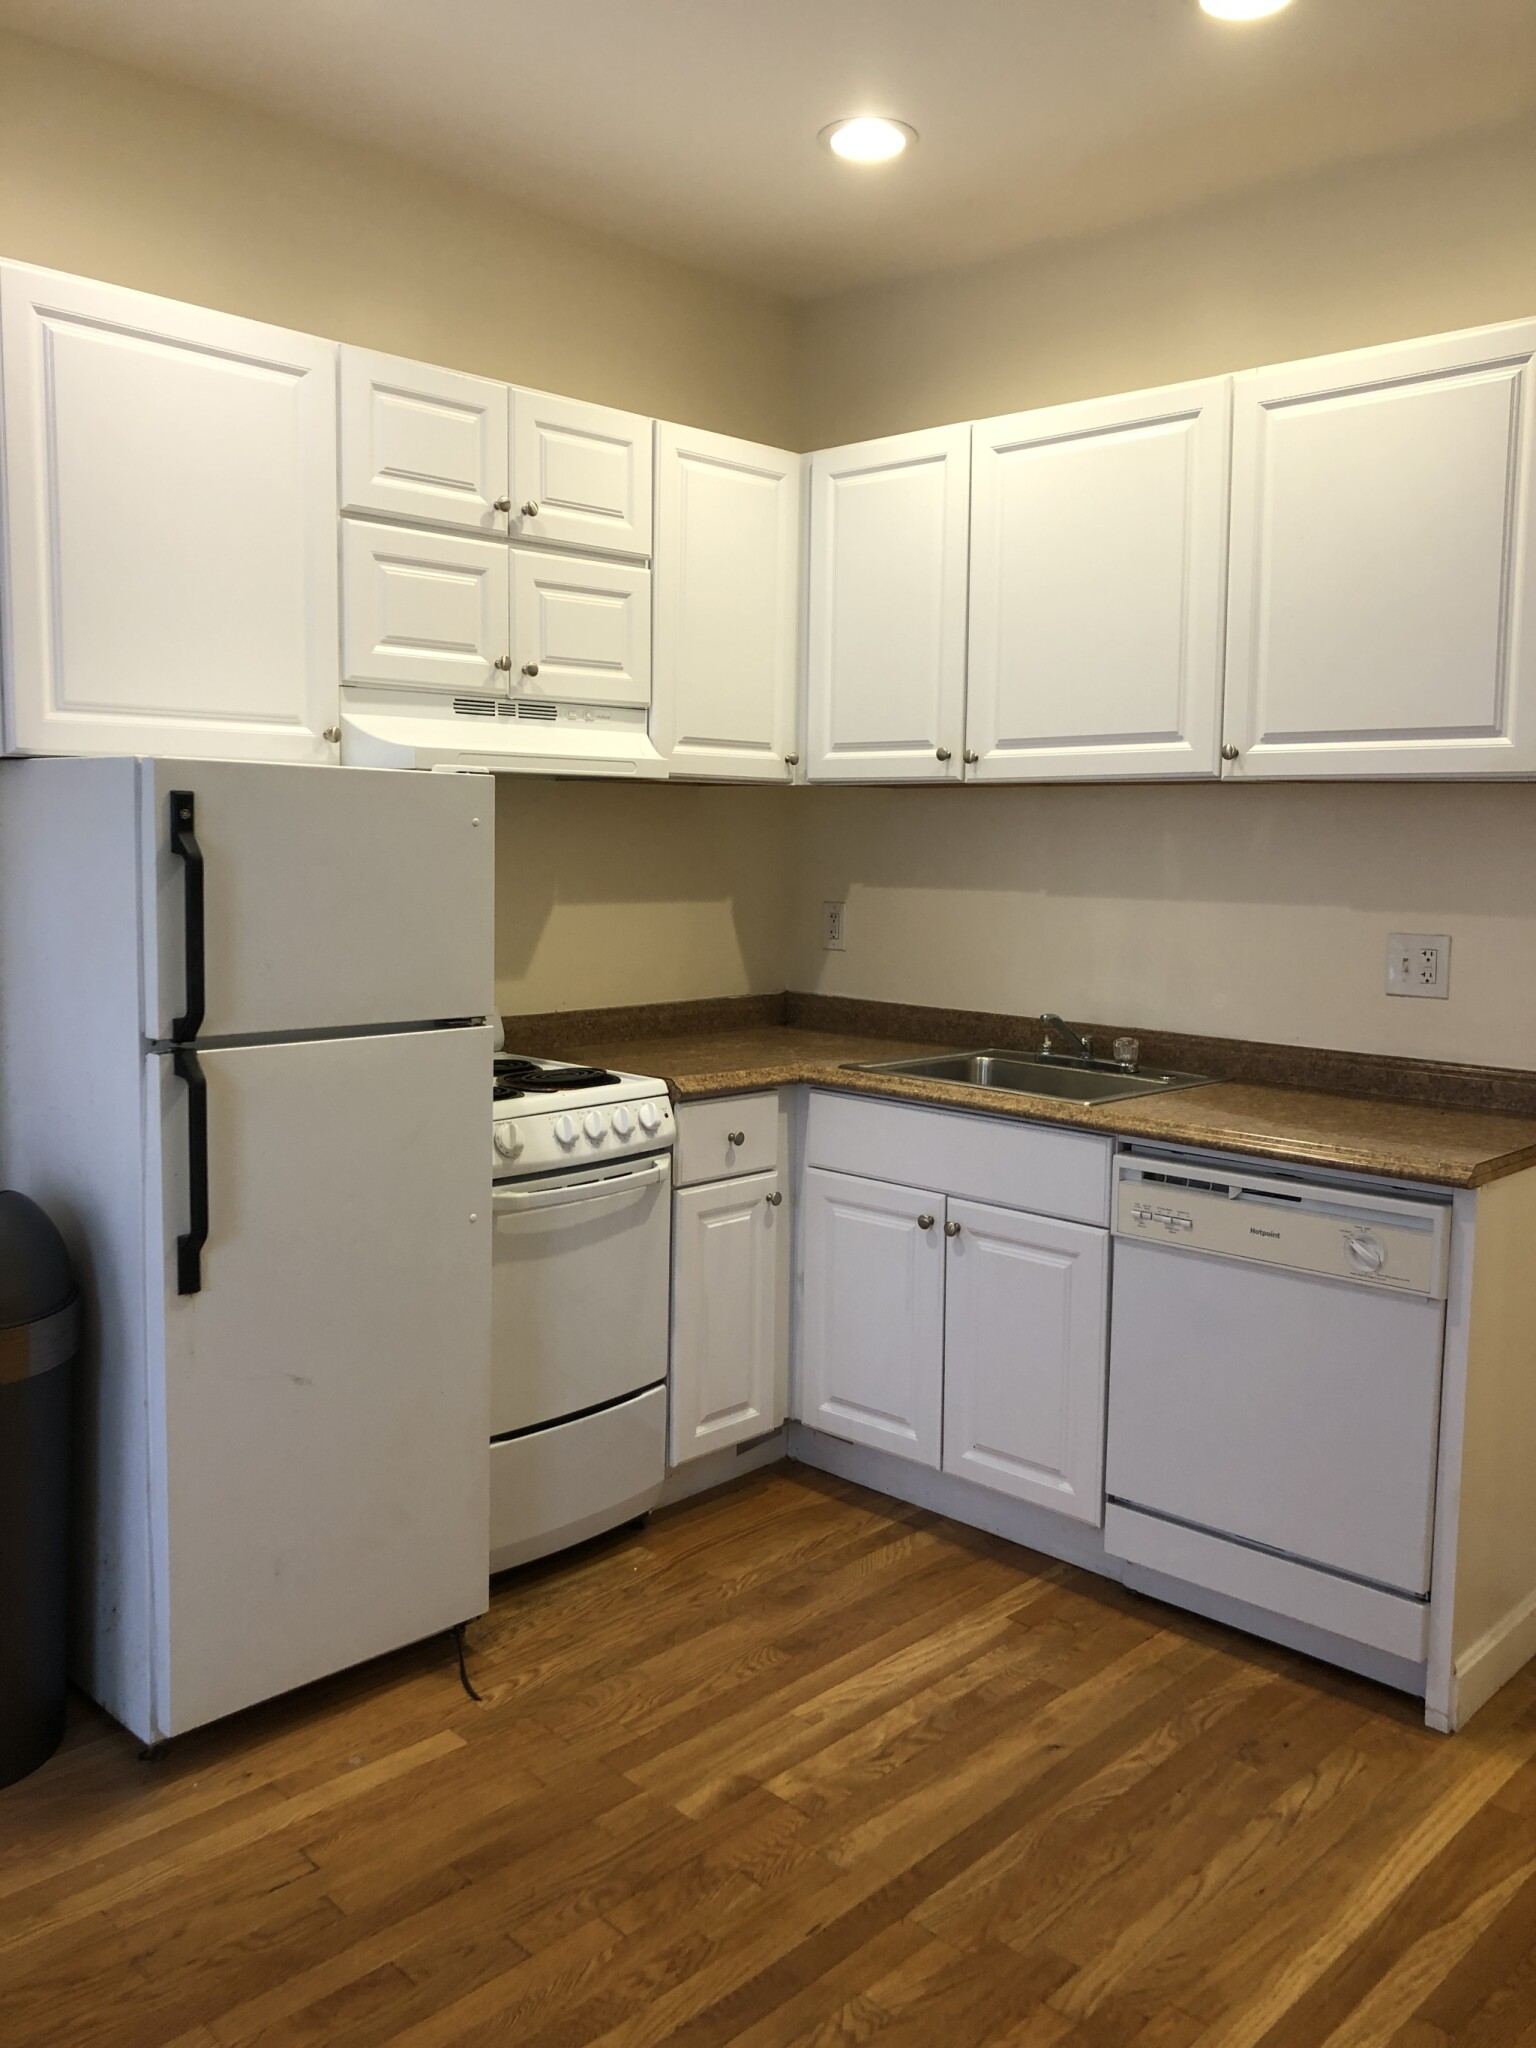 2 Beds, 1 Bath apartment in Boston, Beacon Hill for $2,795